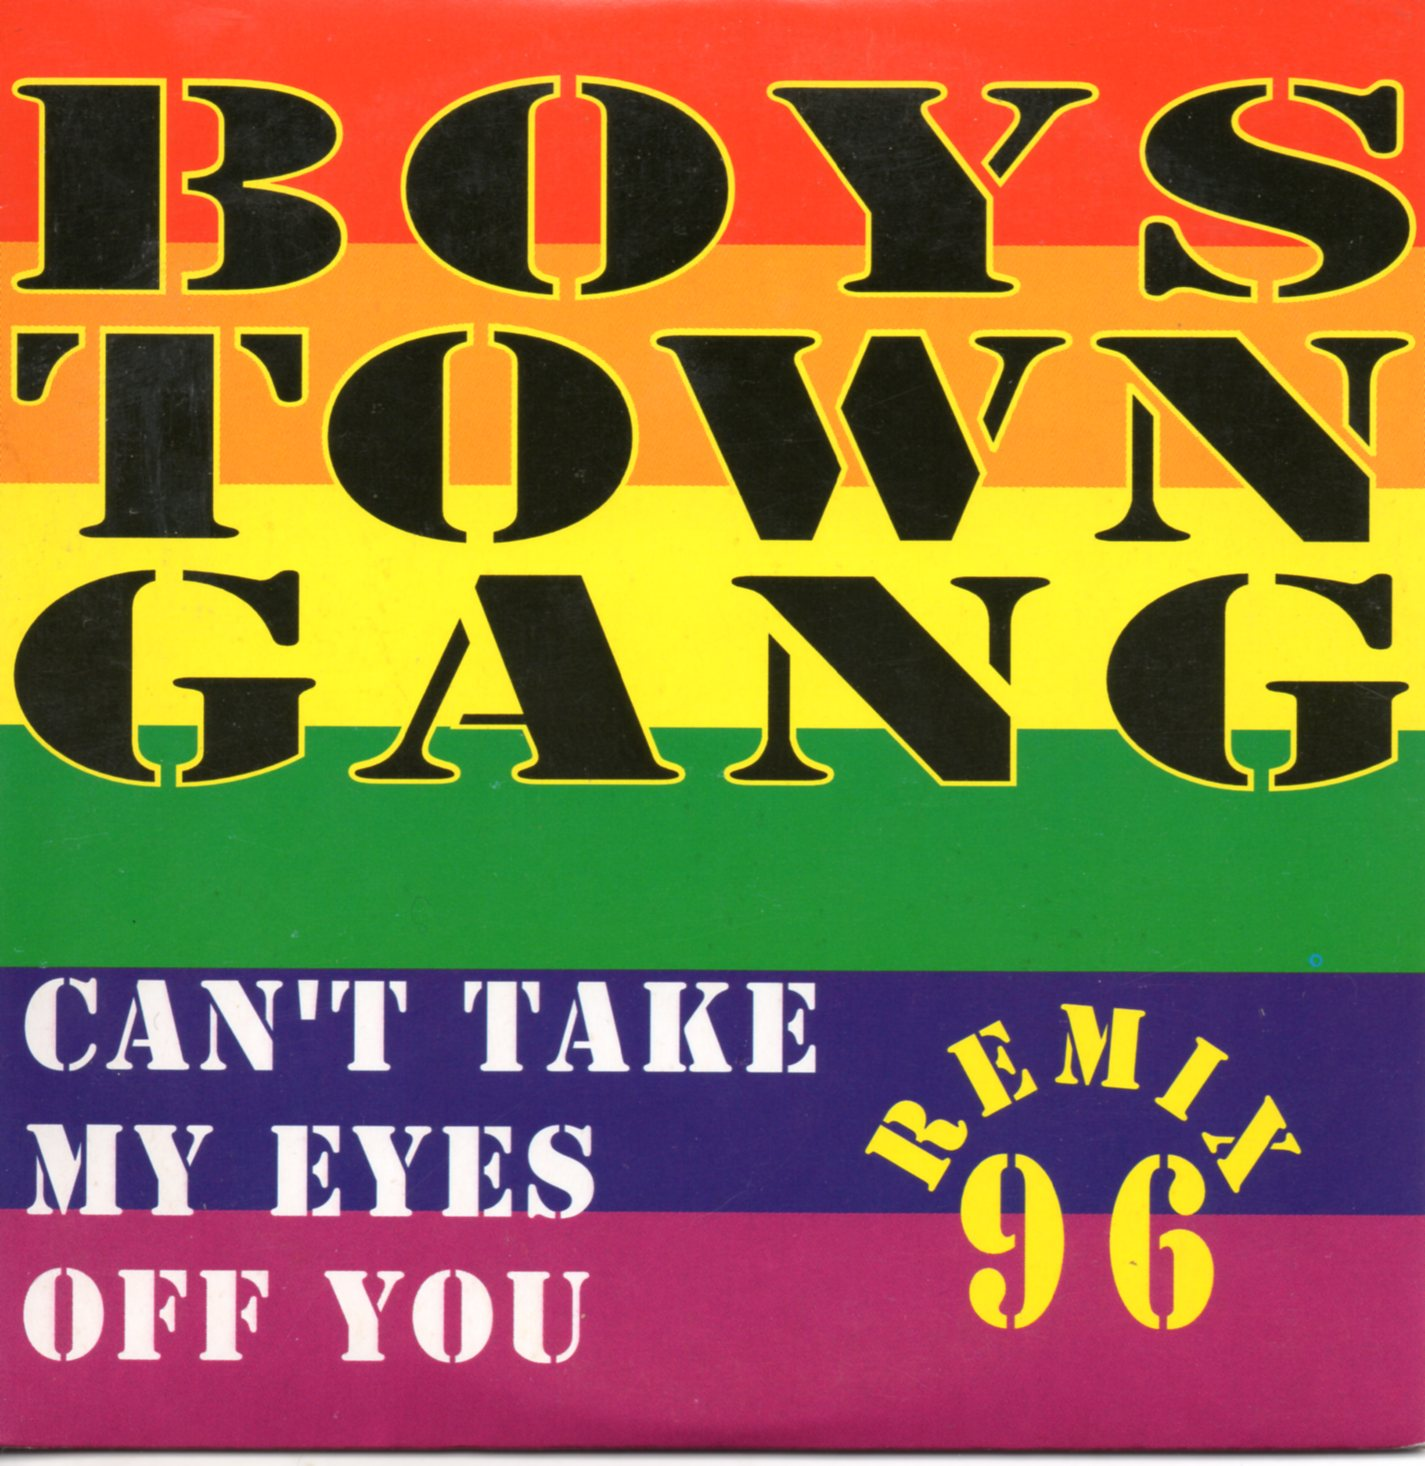 BOYS TOWN GANG - Can't take my eyes off you remix 96 3-track CARD SLEEVE - CD single